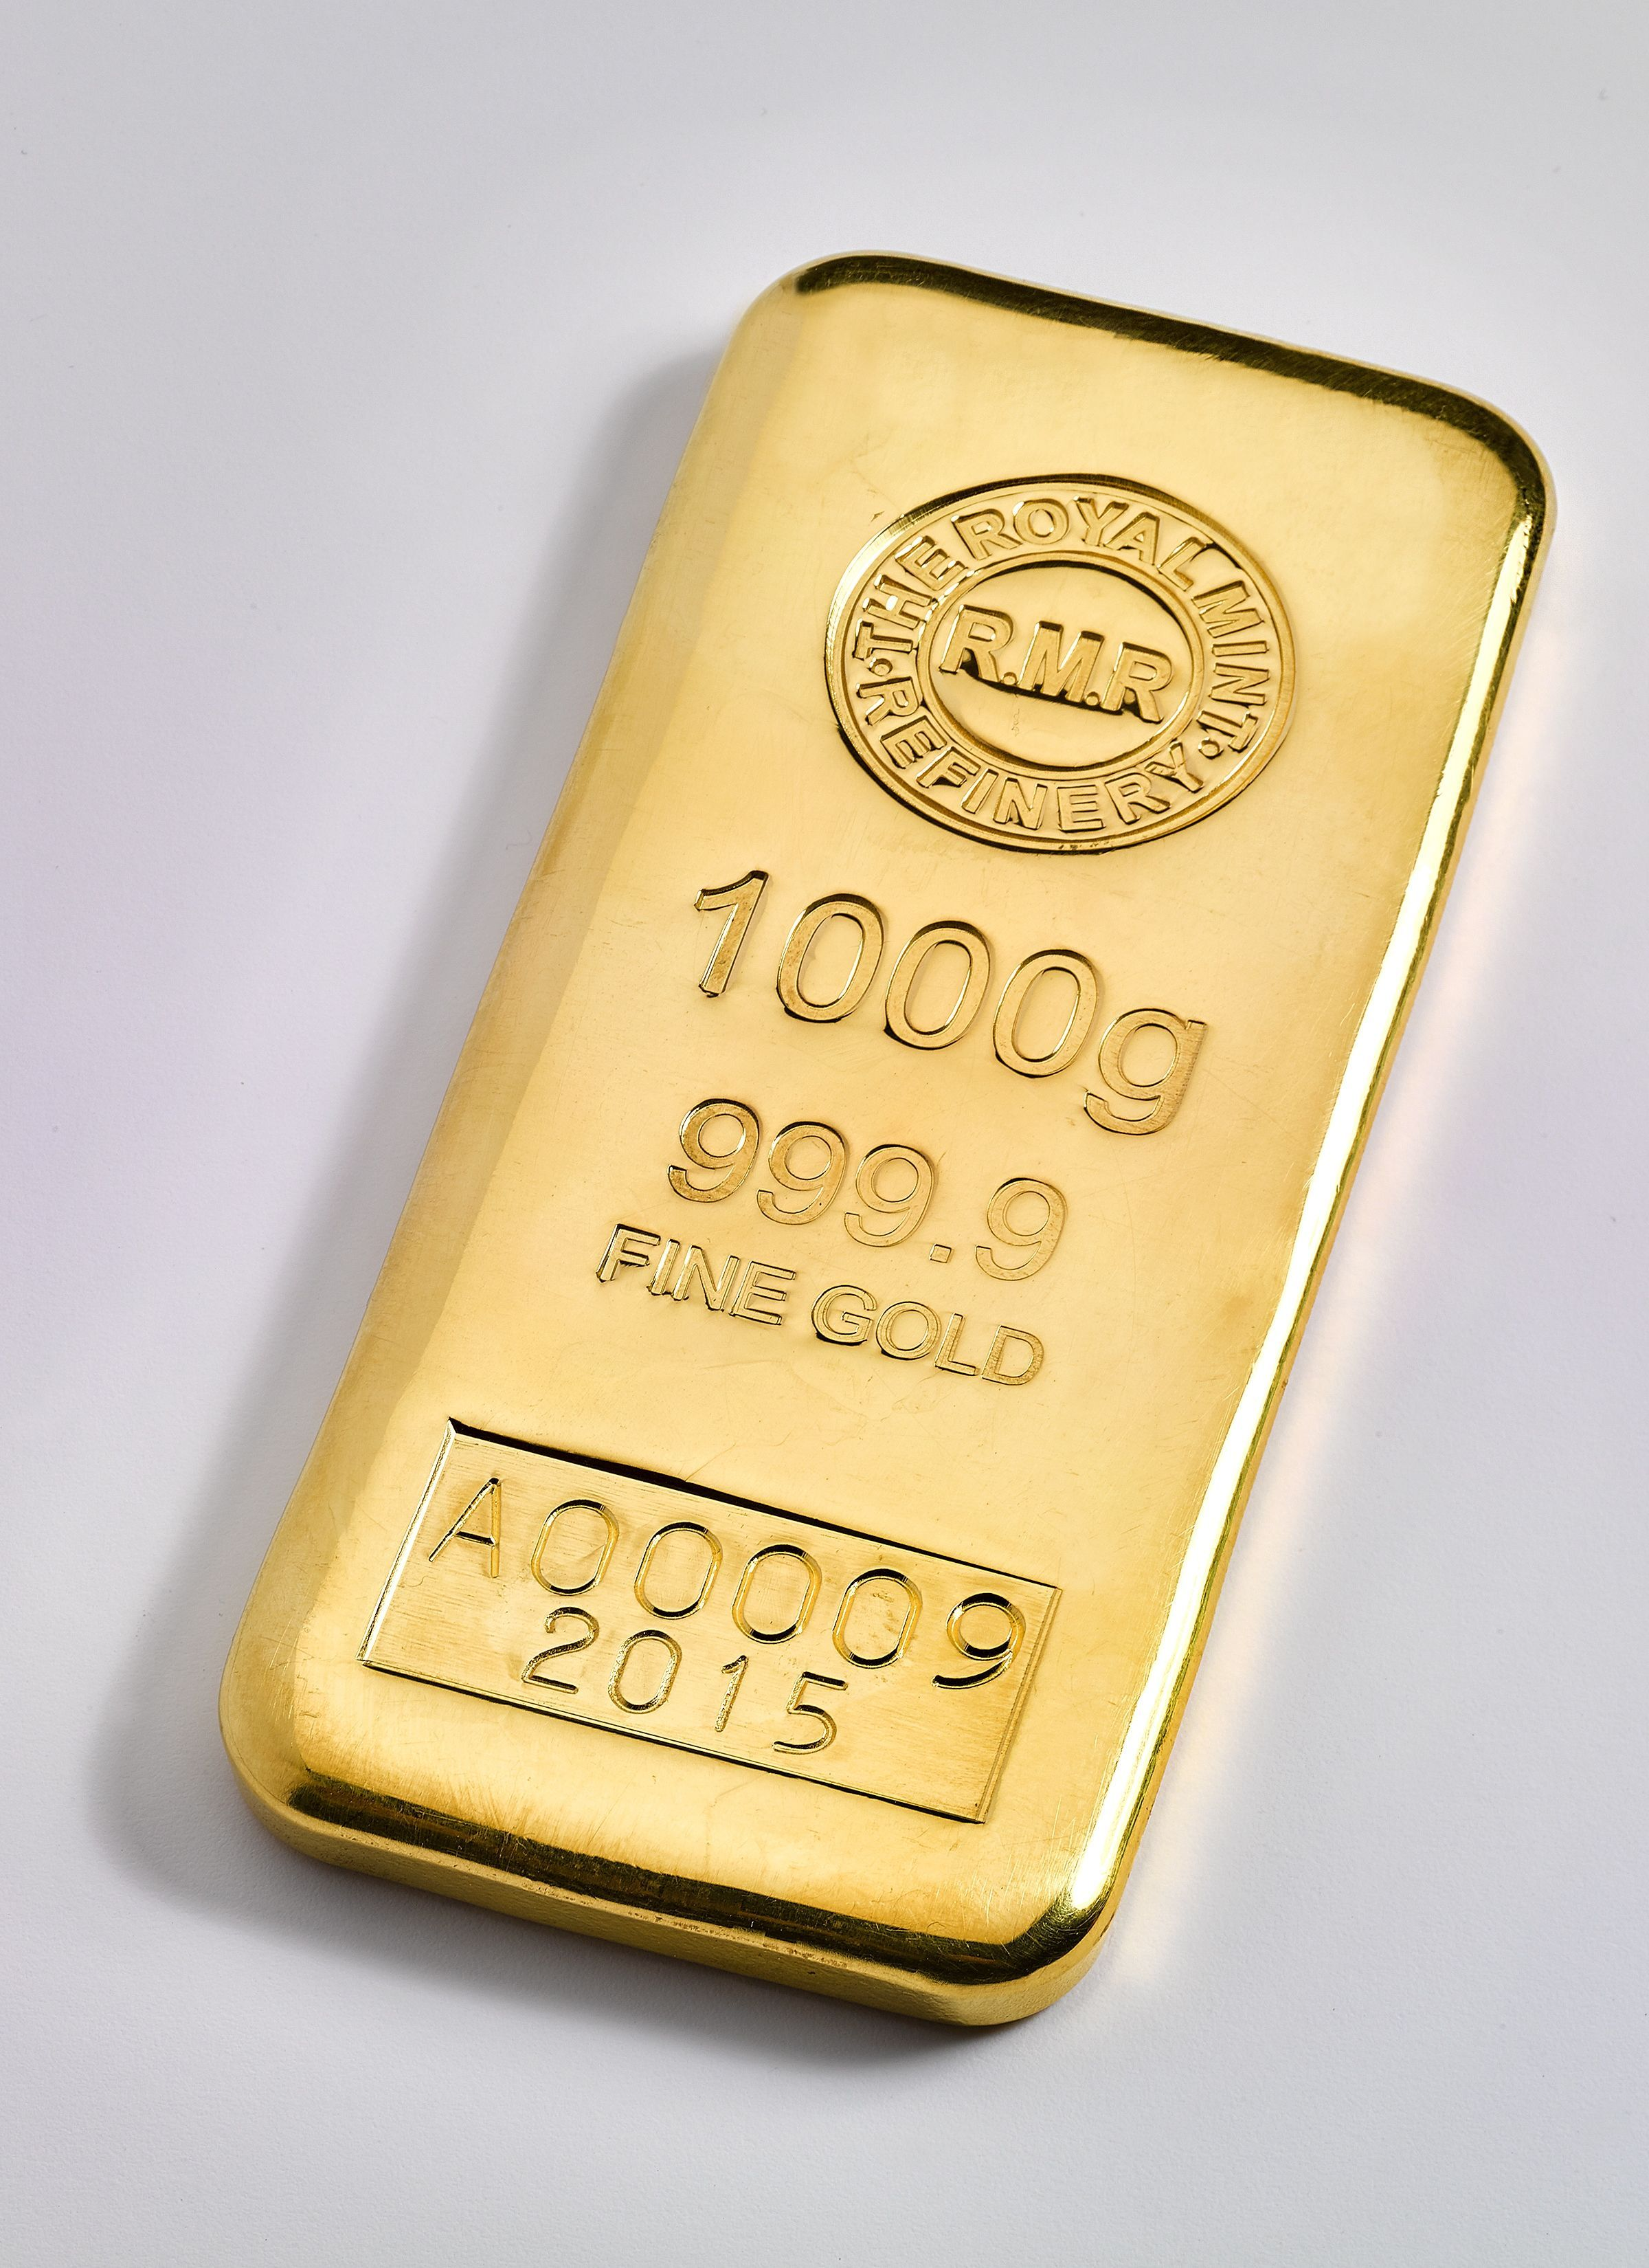 Cast Your Eyes On This The New 1kg Gold Cast Bar From Www Royalmintbullion Com Gold Bullion Bars Gold Bullion Coins Gold Bullion